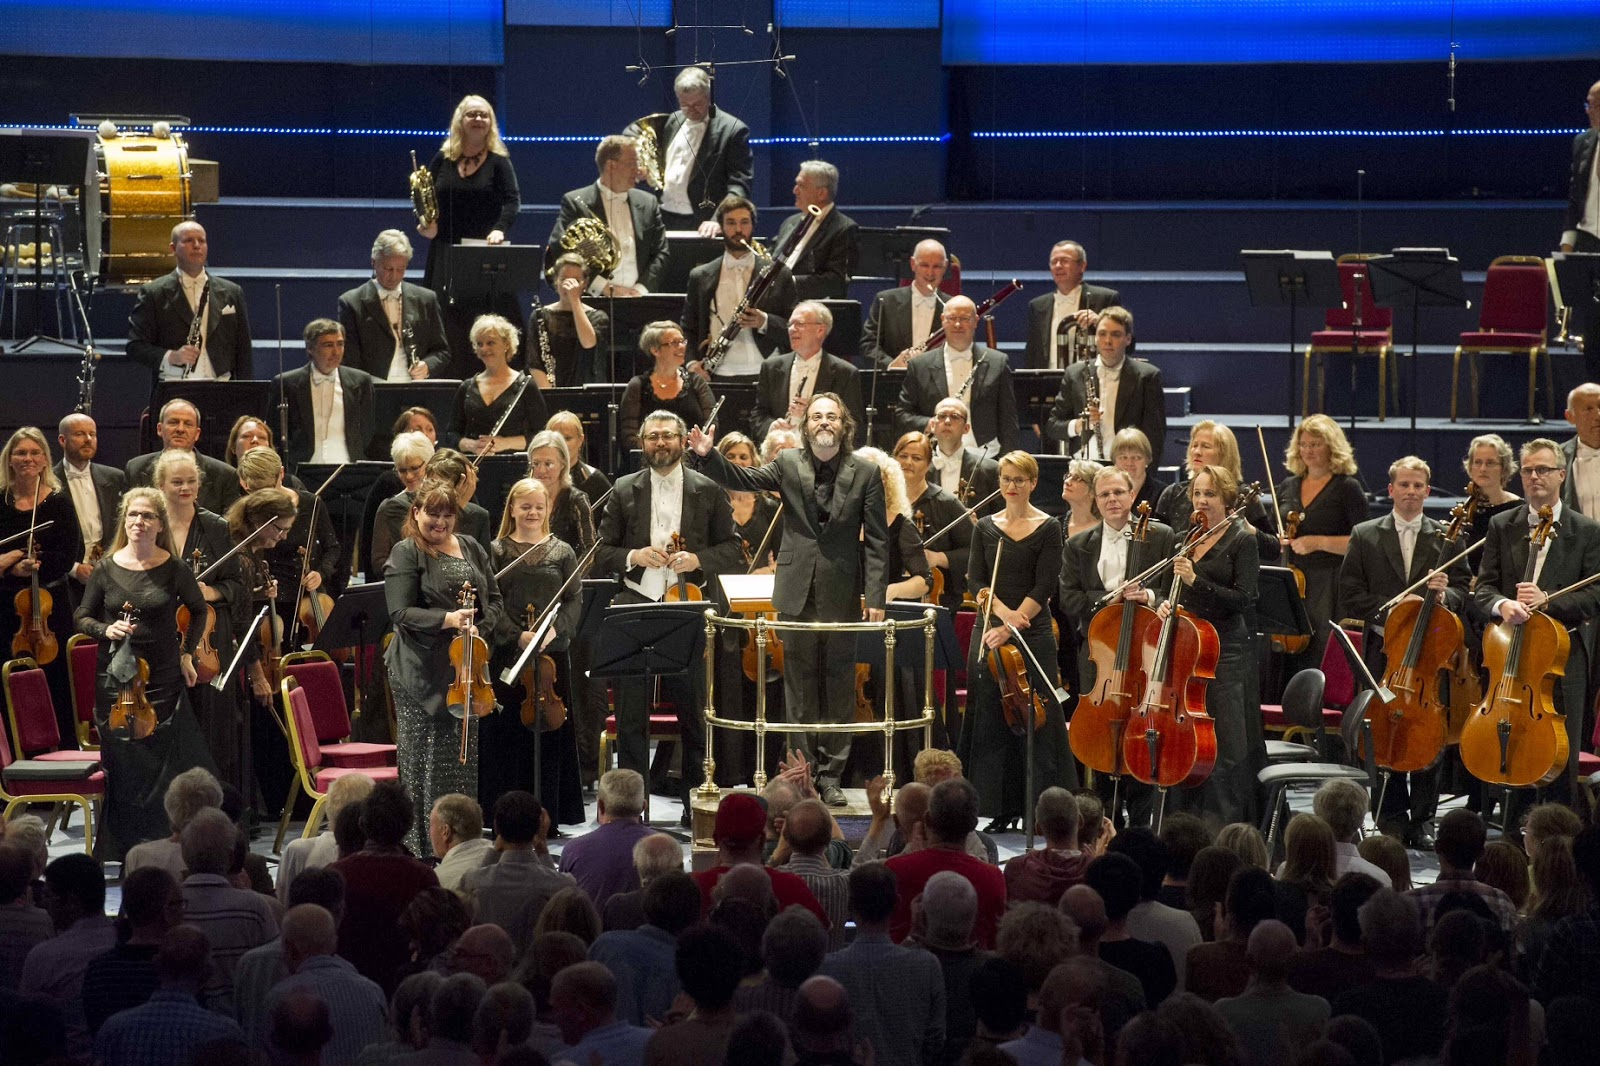 Ilan Volkov and the Iceland Symphony Orchestra's Proms Debut - Photo Alistair Muir